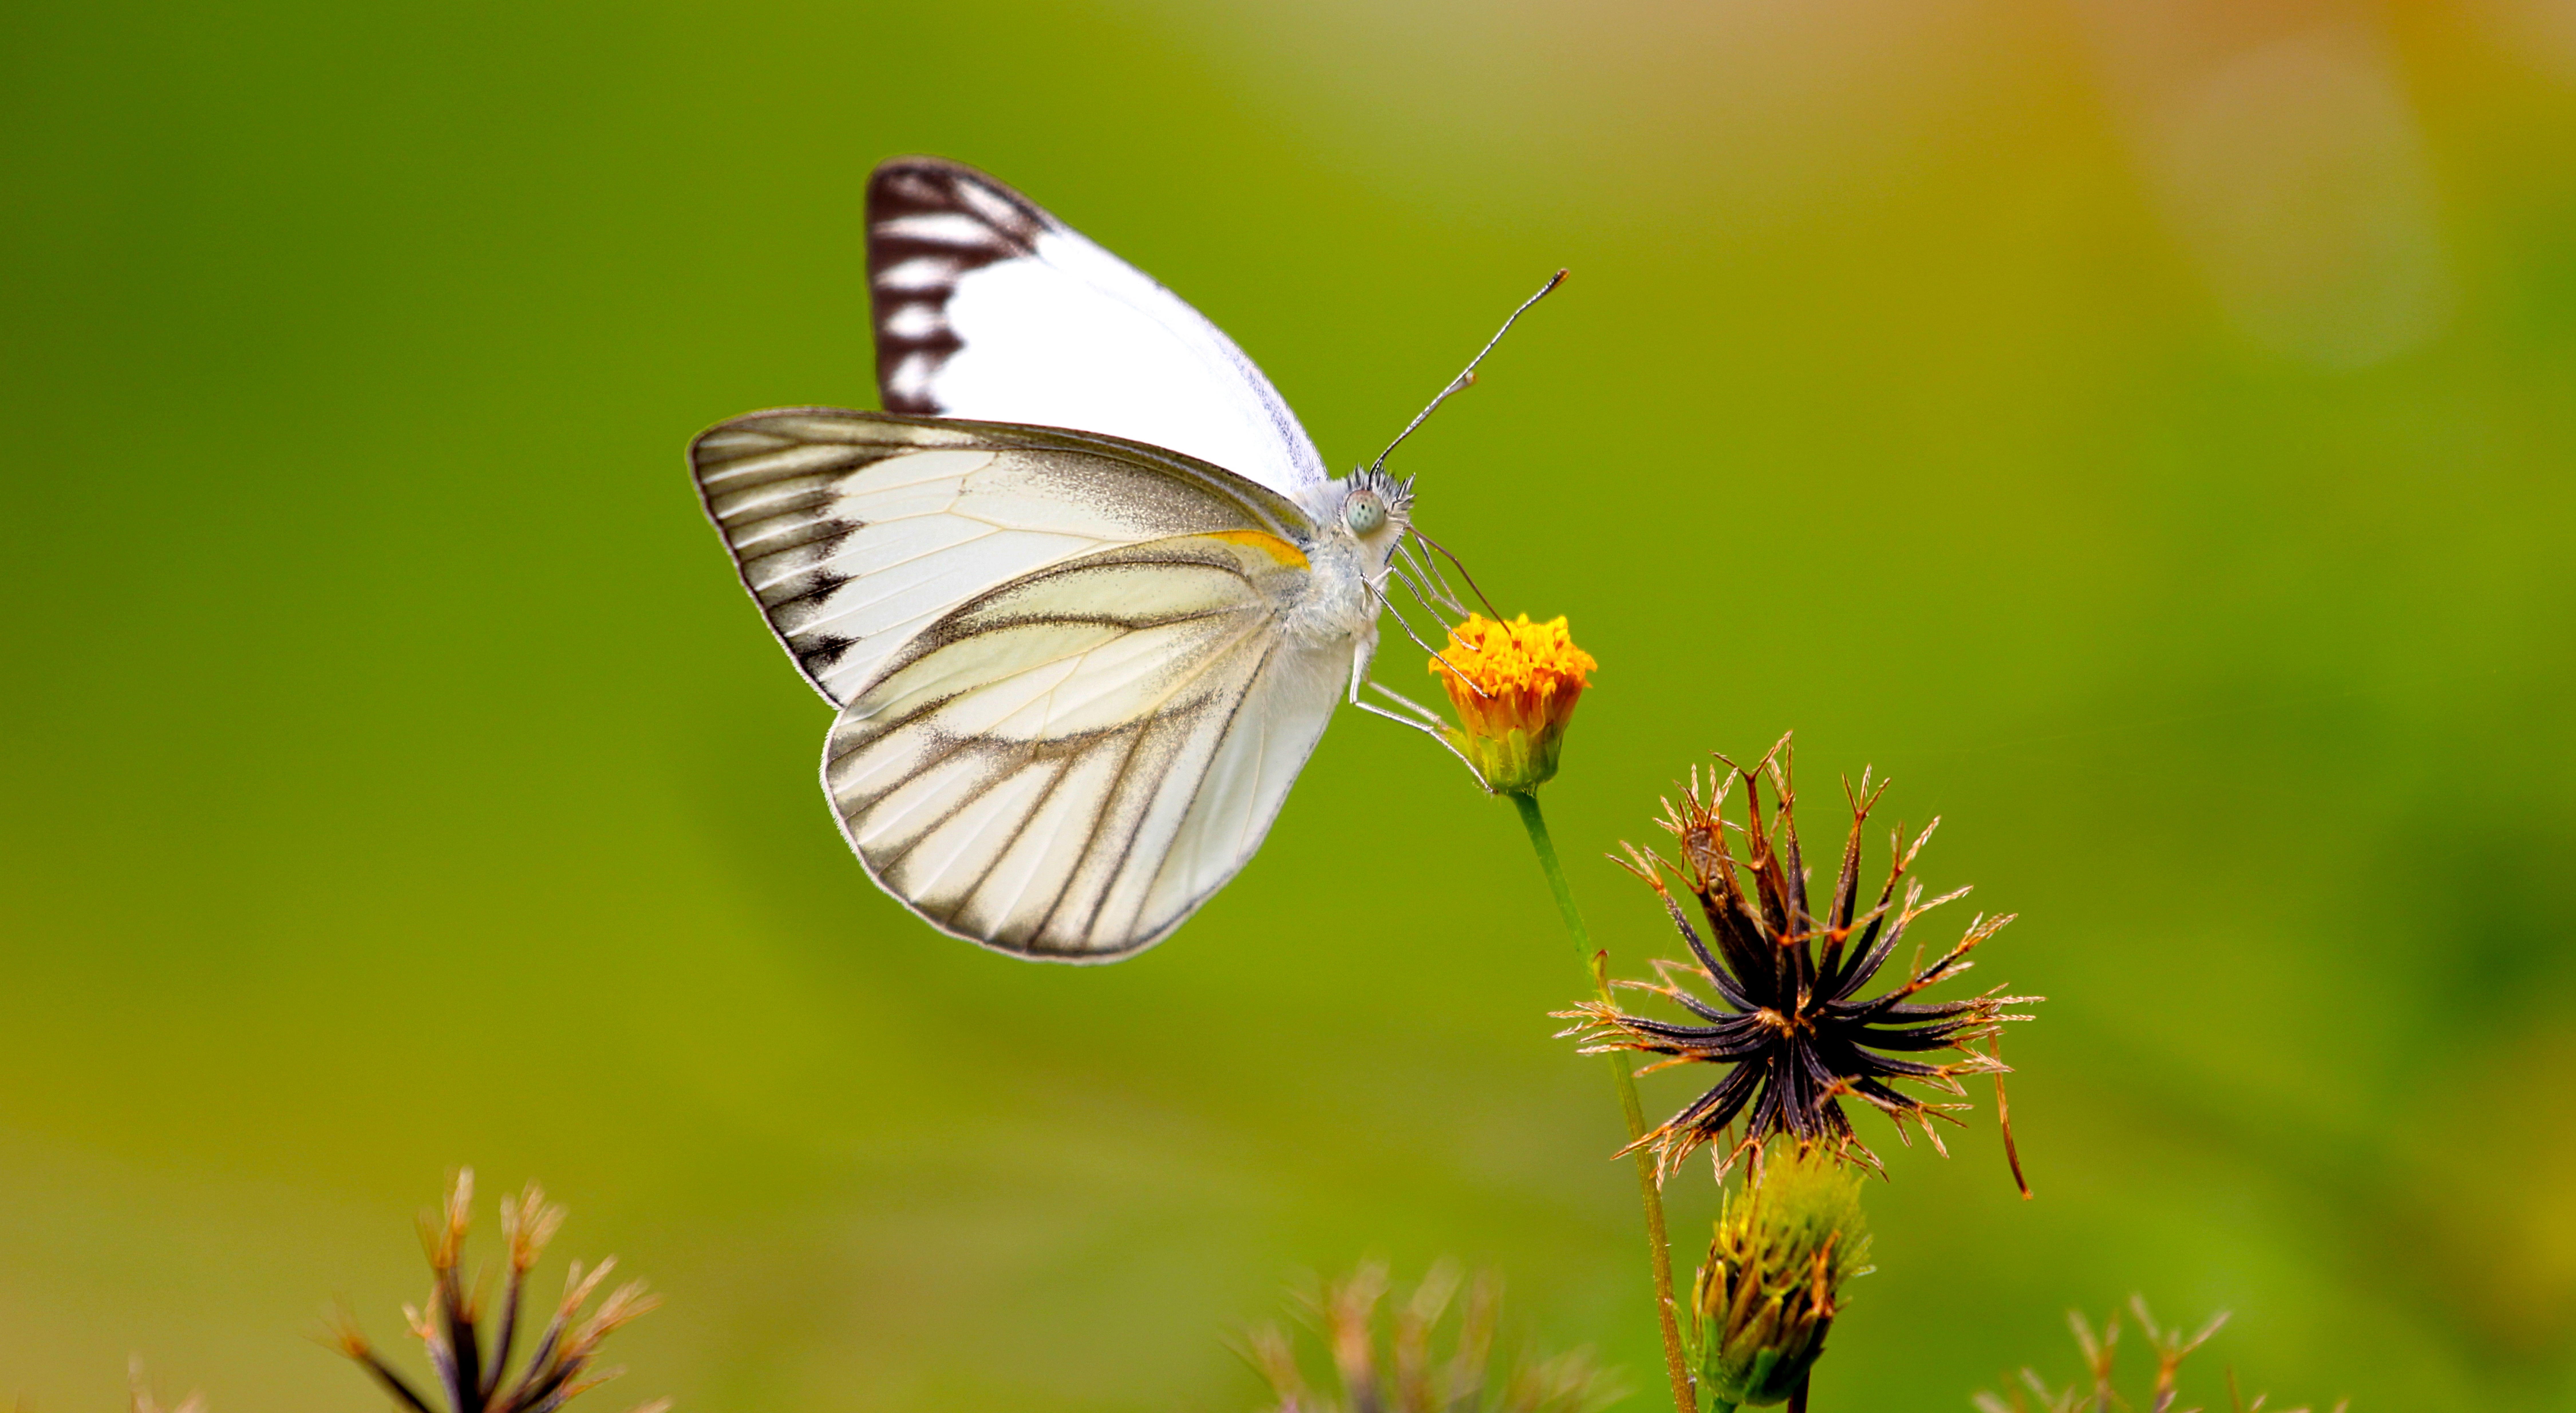 8k Animal Wallpaper Download: Free Photo: White Butterfly